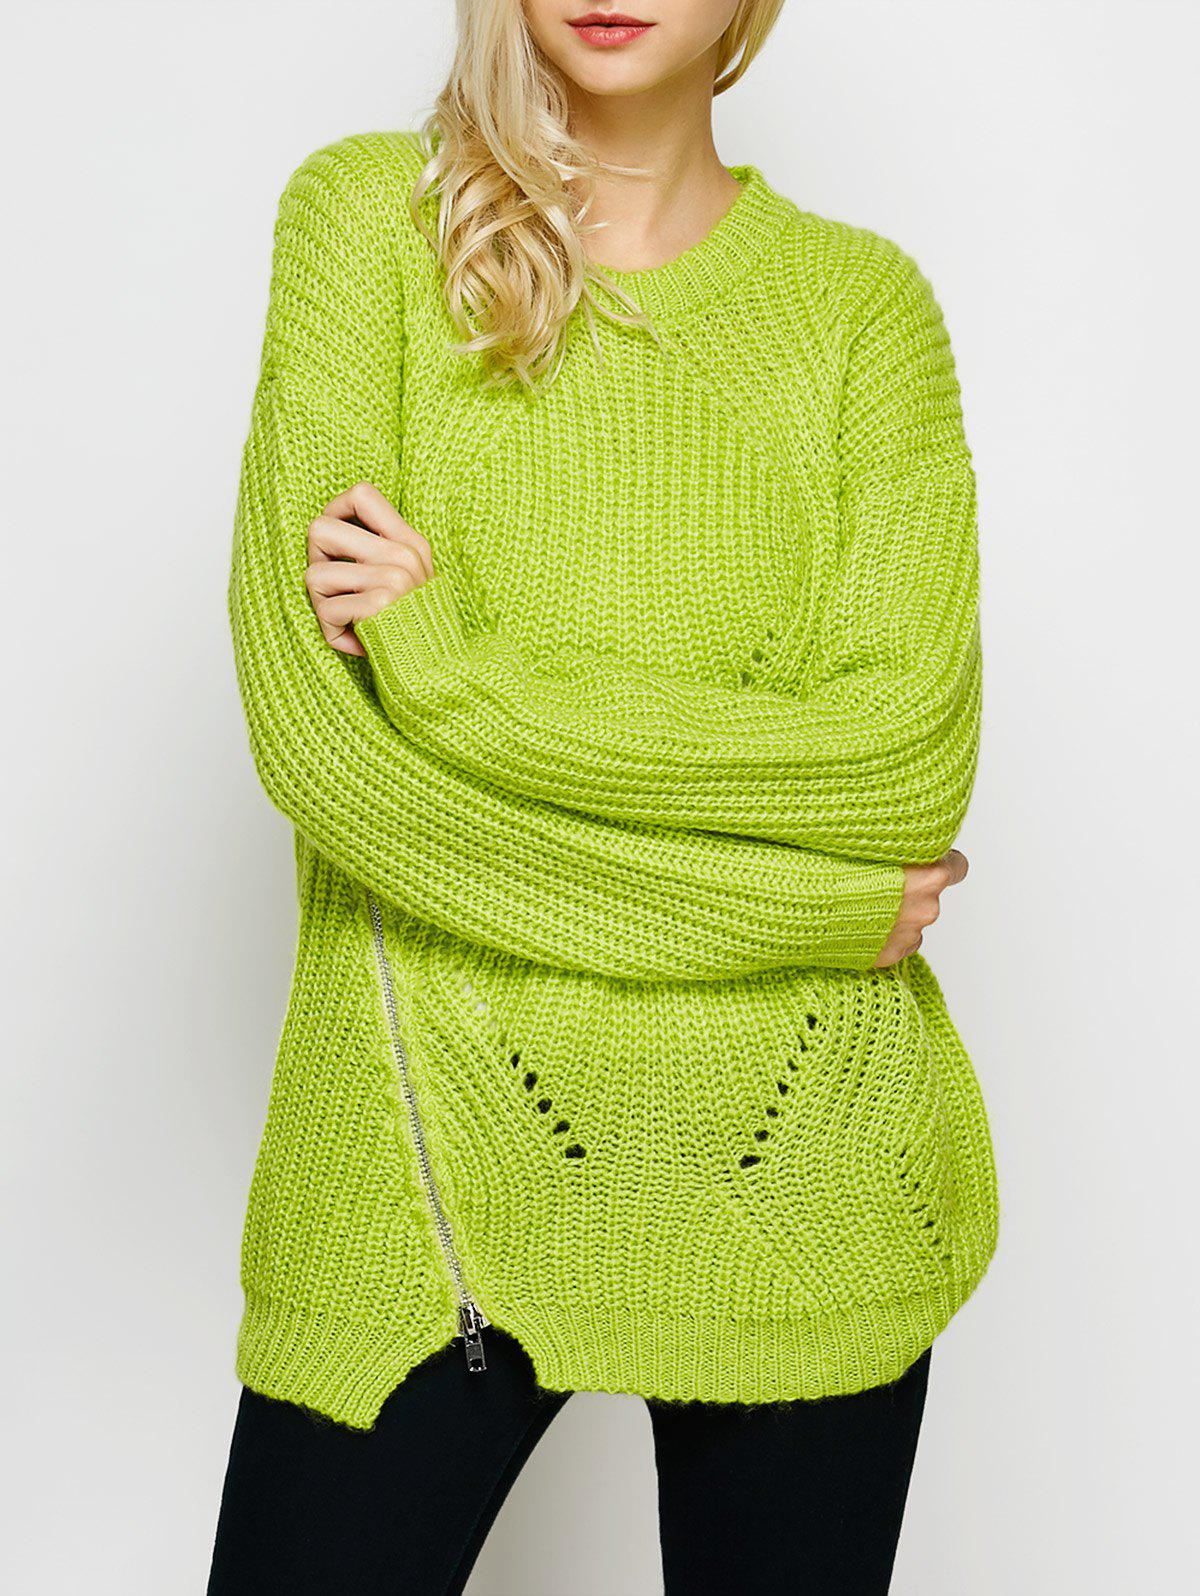 Open Knit Pullover Sweater inc international concepts new olive open knit sweater msrp $89 5 dbfl